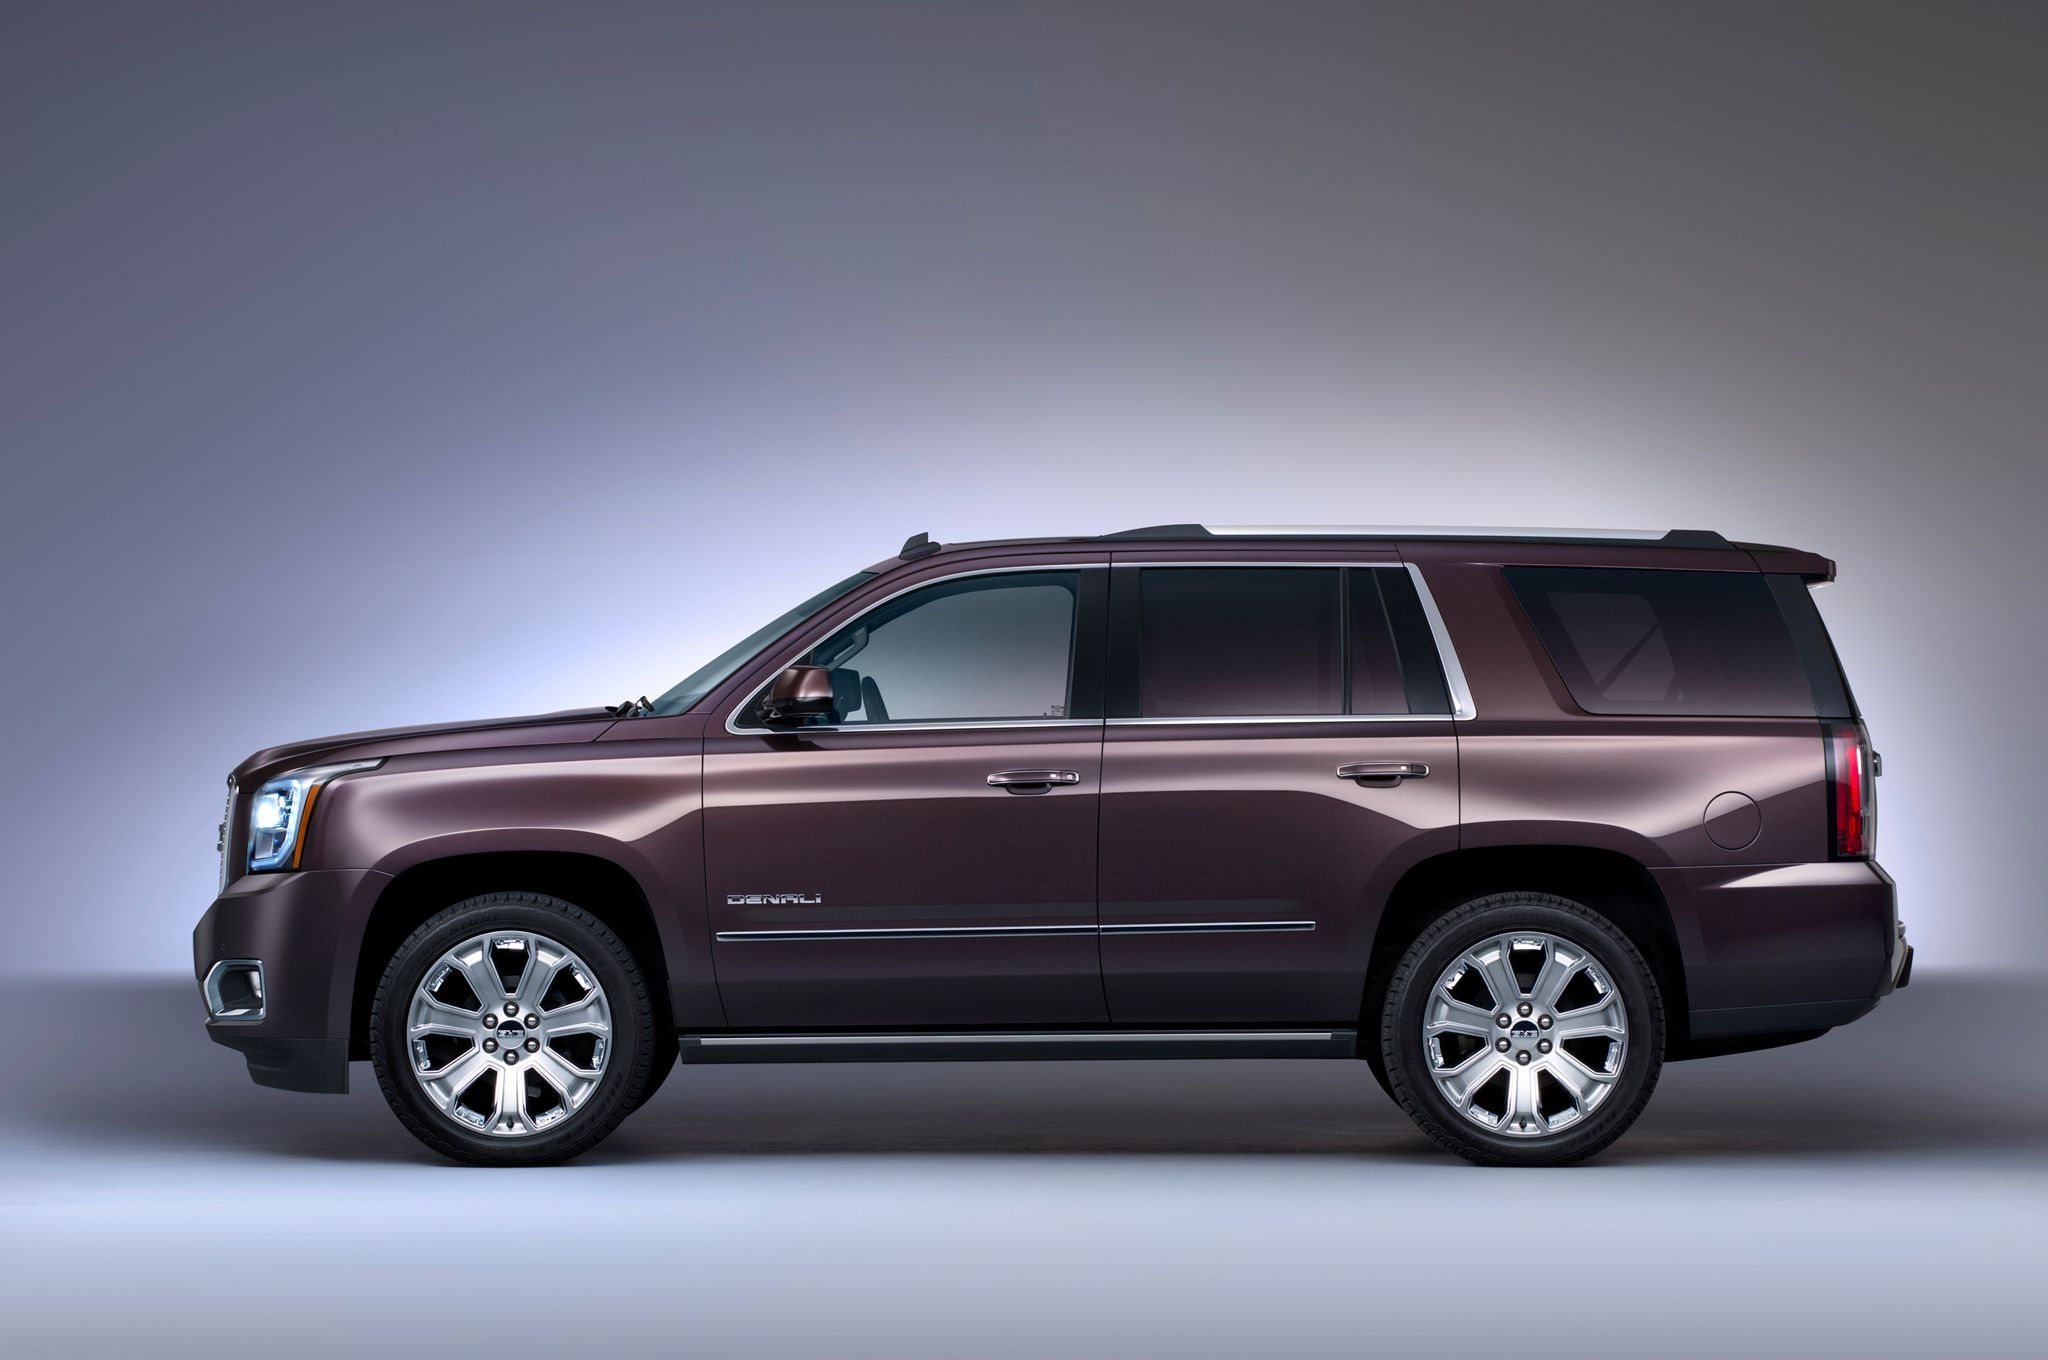 I Ve Always Wanted One Of These Suv S Yukon Denali Buick Gmc